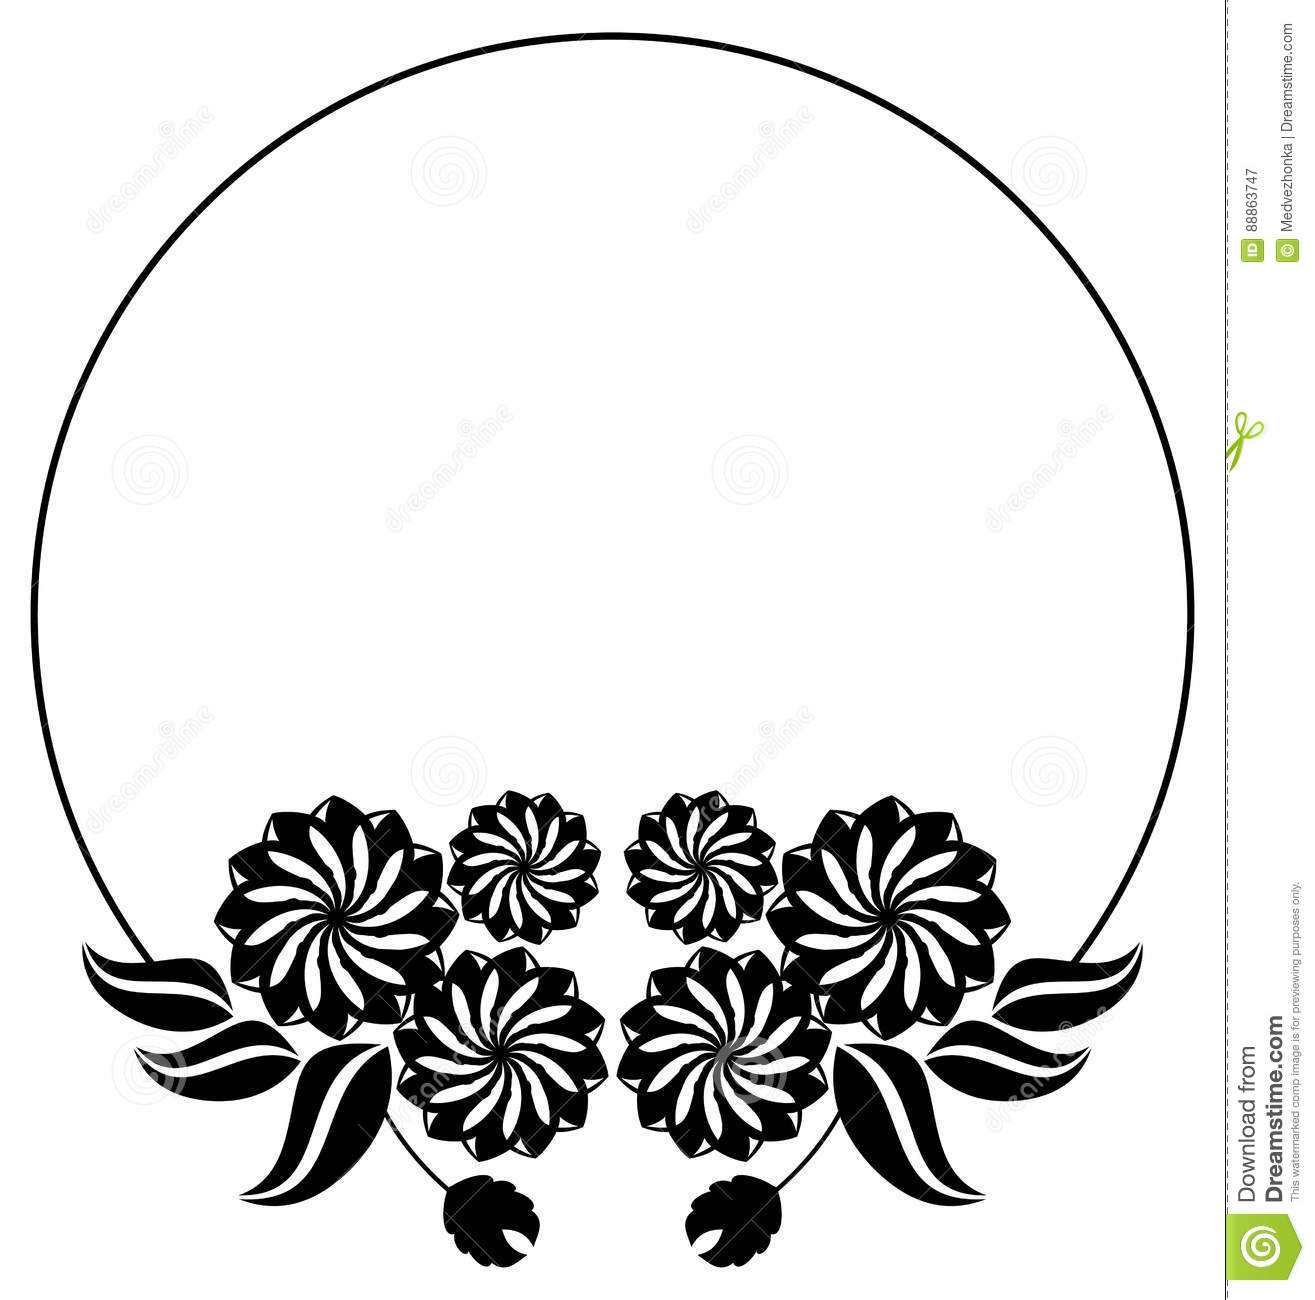 Abstract Black And White Ornament With Decorative Flowers Raster